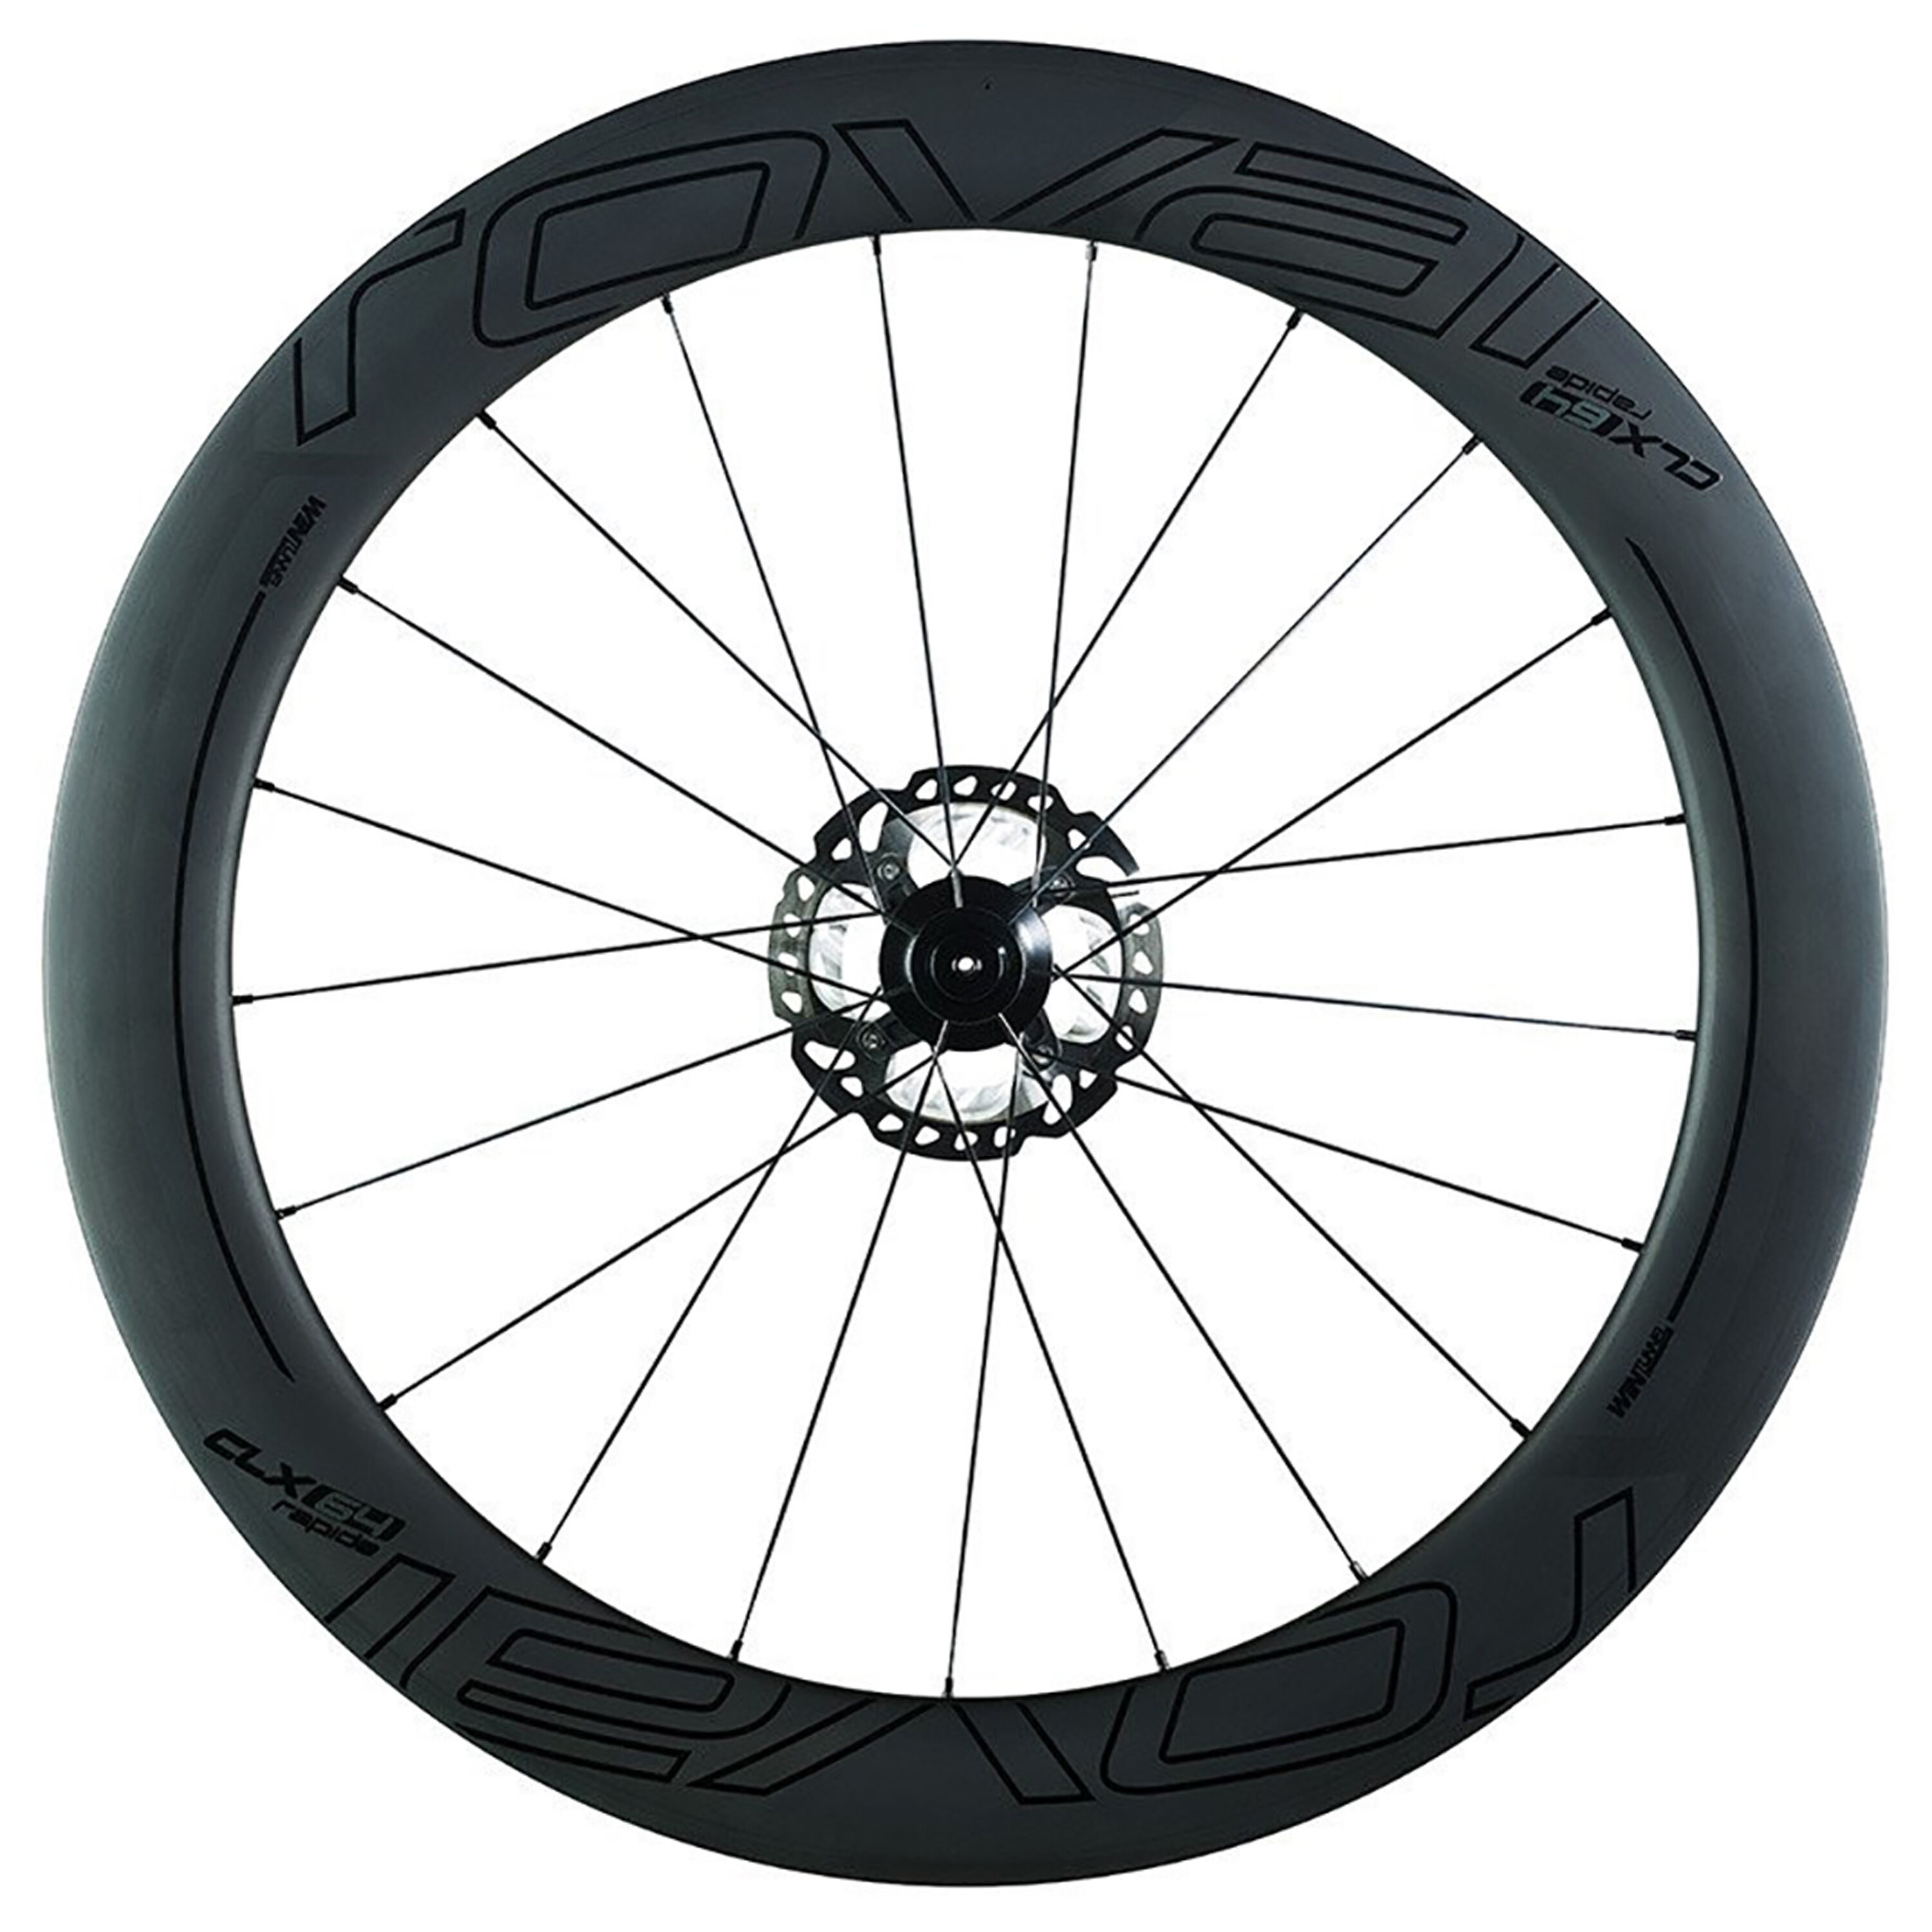 Roval Rapide CLX 64 Disc front wheel 2019